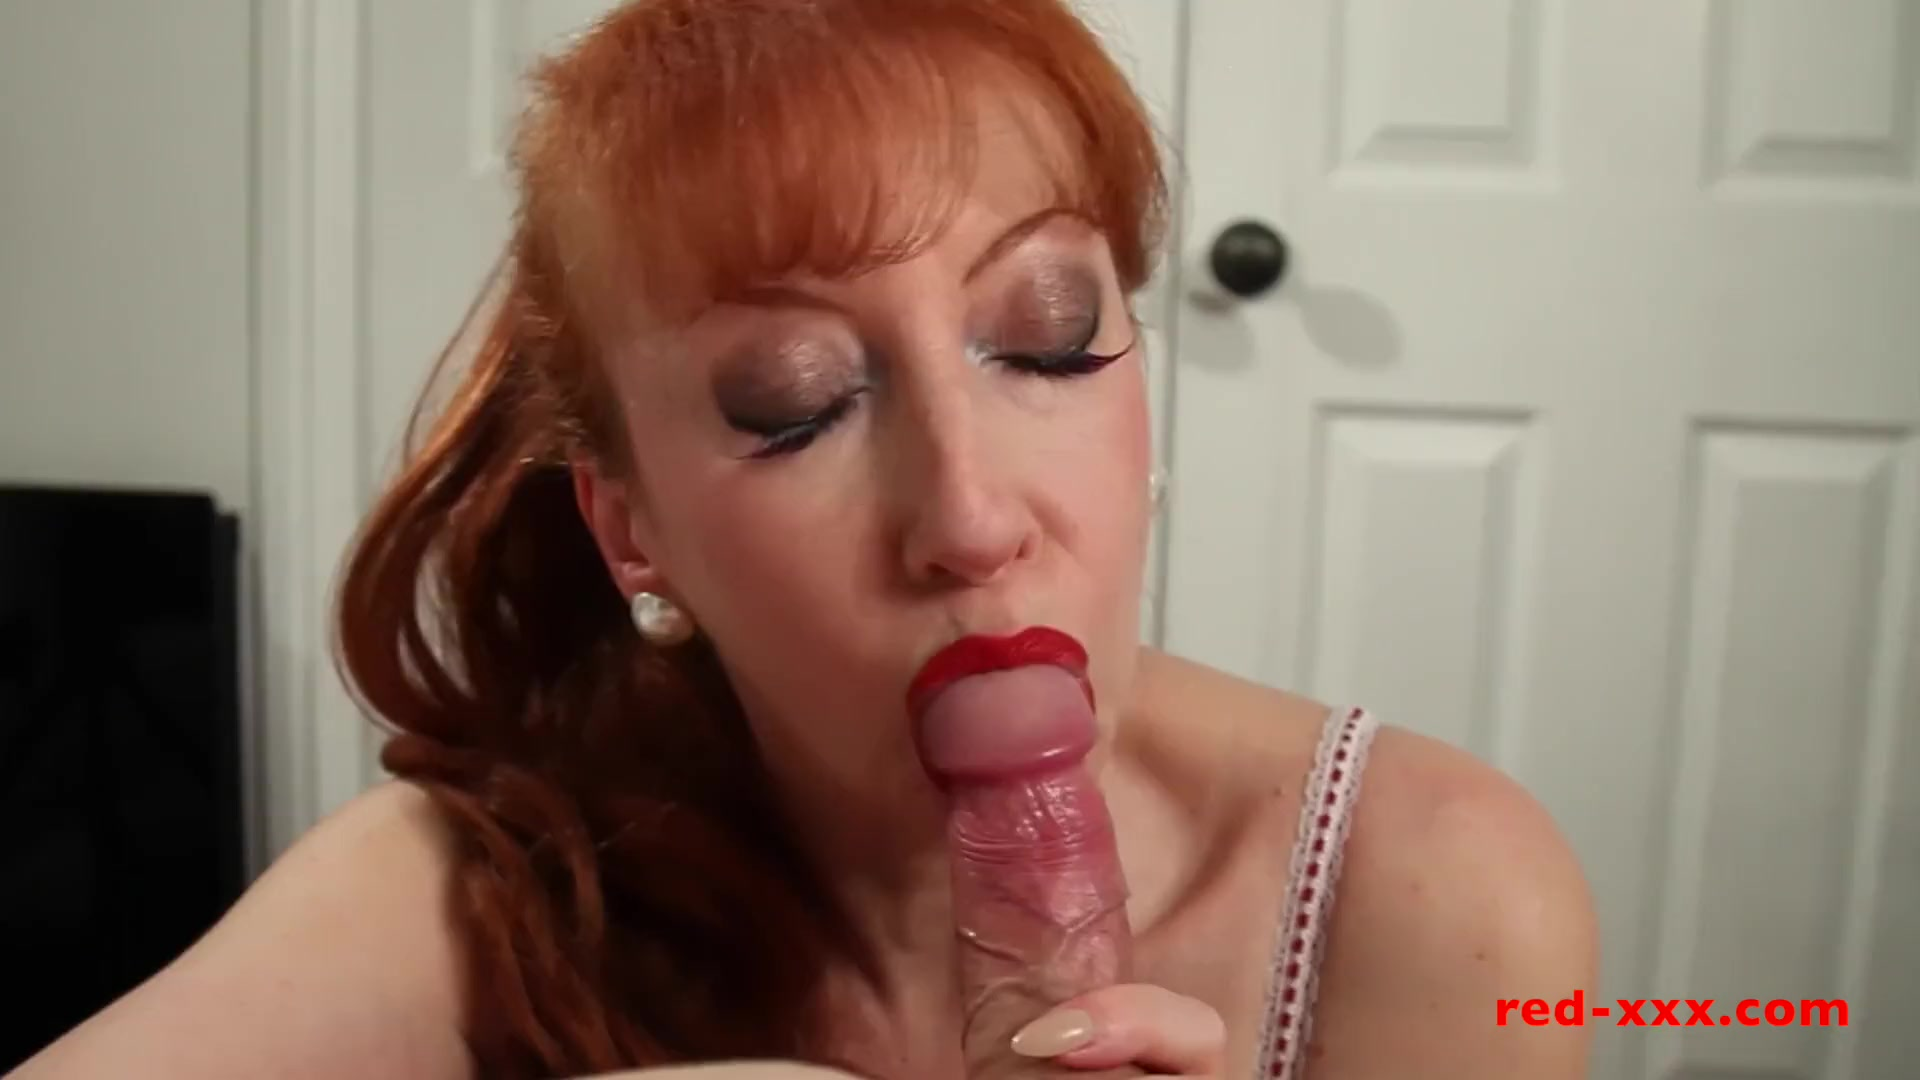 Preview 3 of Milf Red Sucked And Fucked Her Way To Orgasm After Orgasm